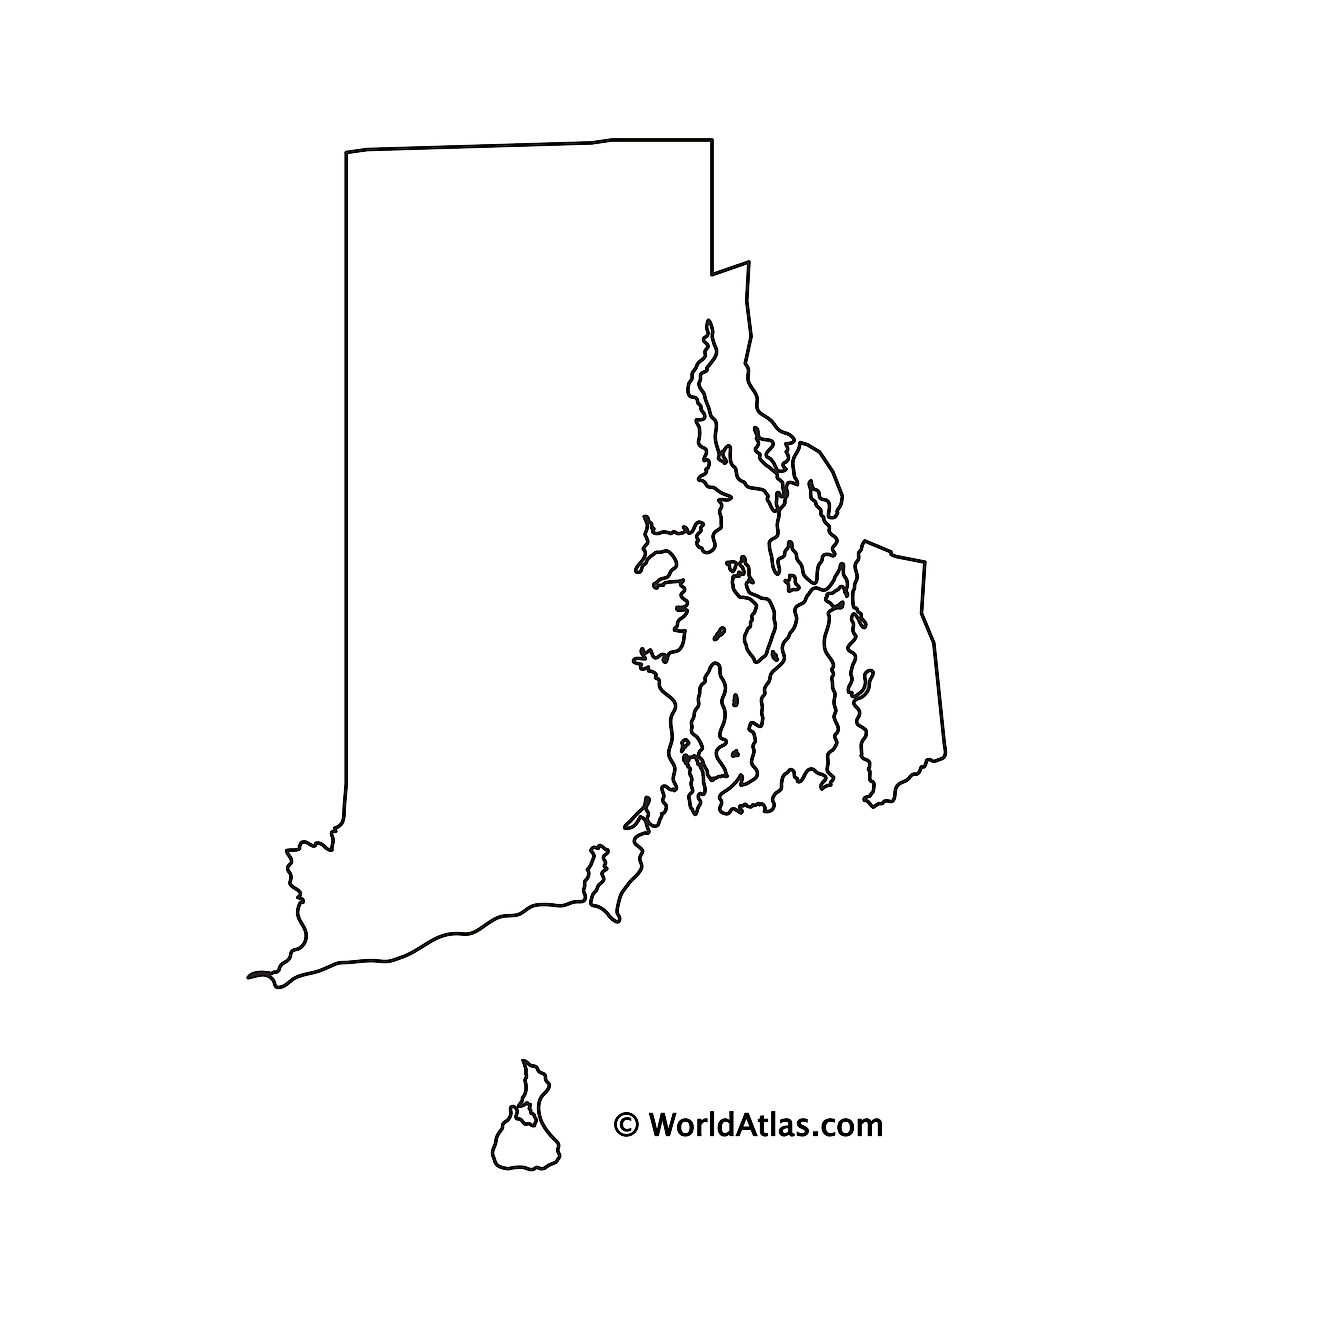 Blank Outline Map of Rhode Island